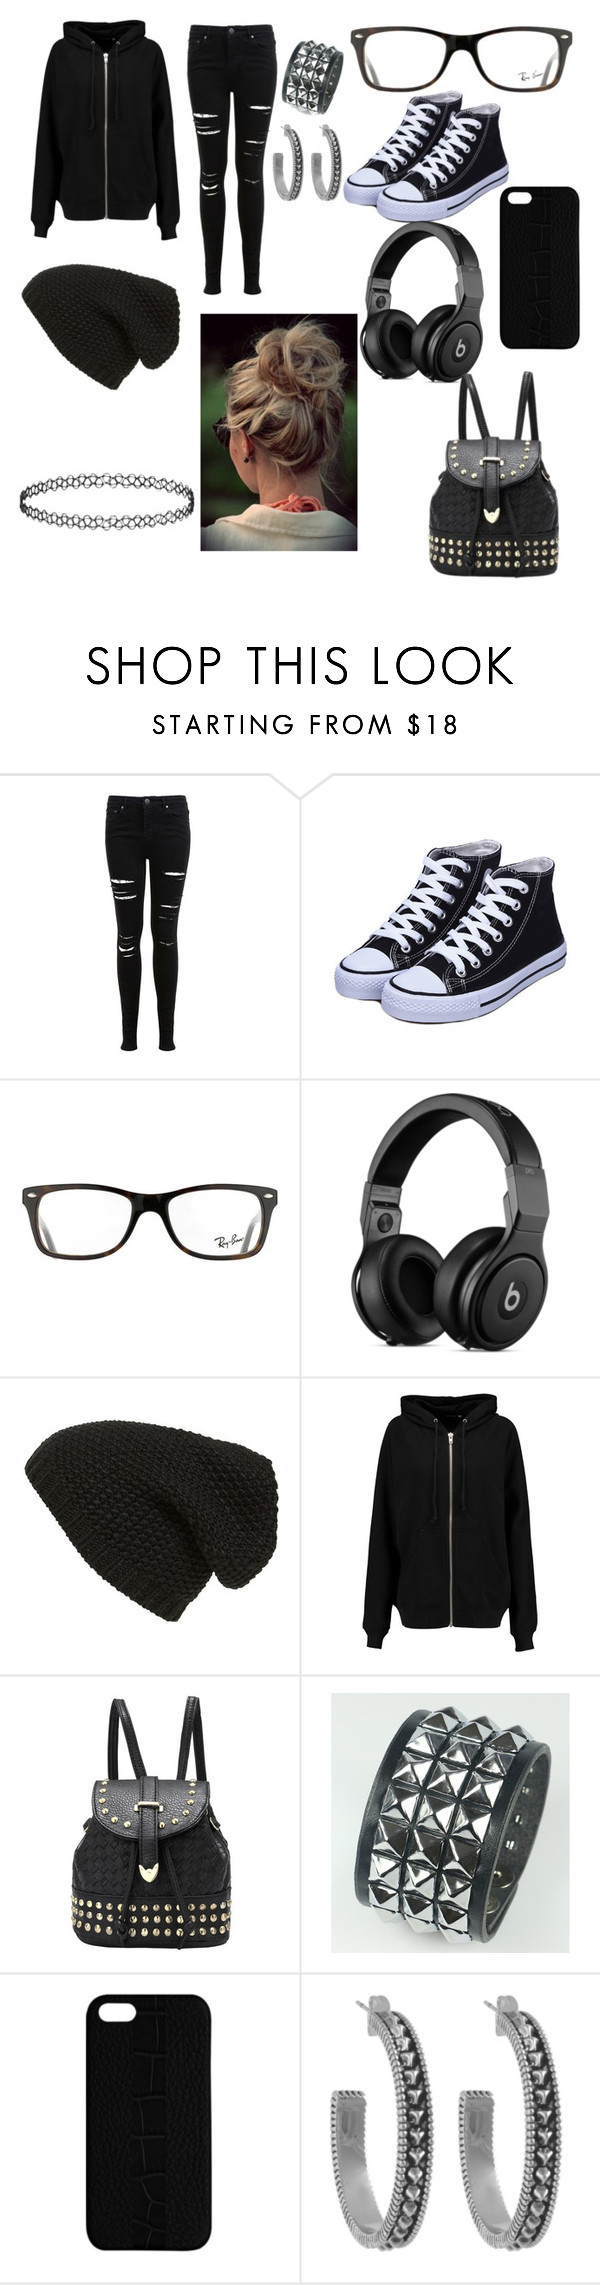 """""""Untitled #1"""" by donna-phelps ❤ liked on Polyvore featuring beauty, Miss Selfridge, Ray-Ban, Phase 3, BLK DNM, Maison Takuya and House of Harlow 1960"""